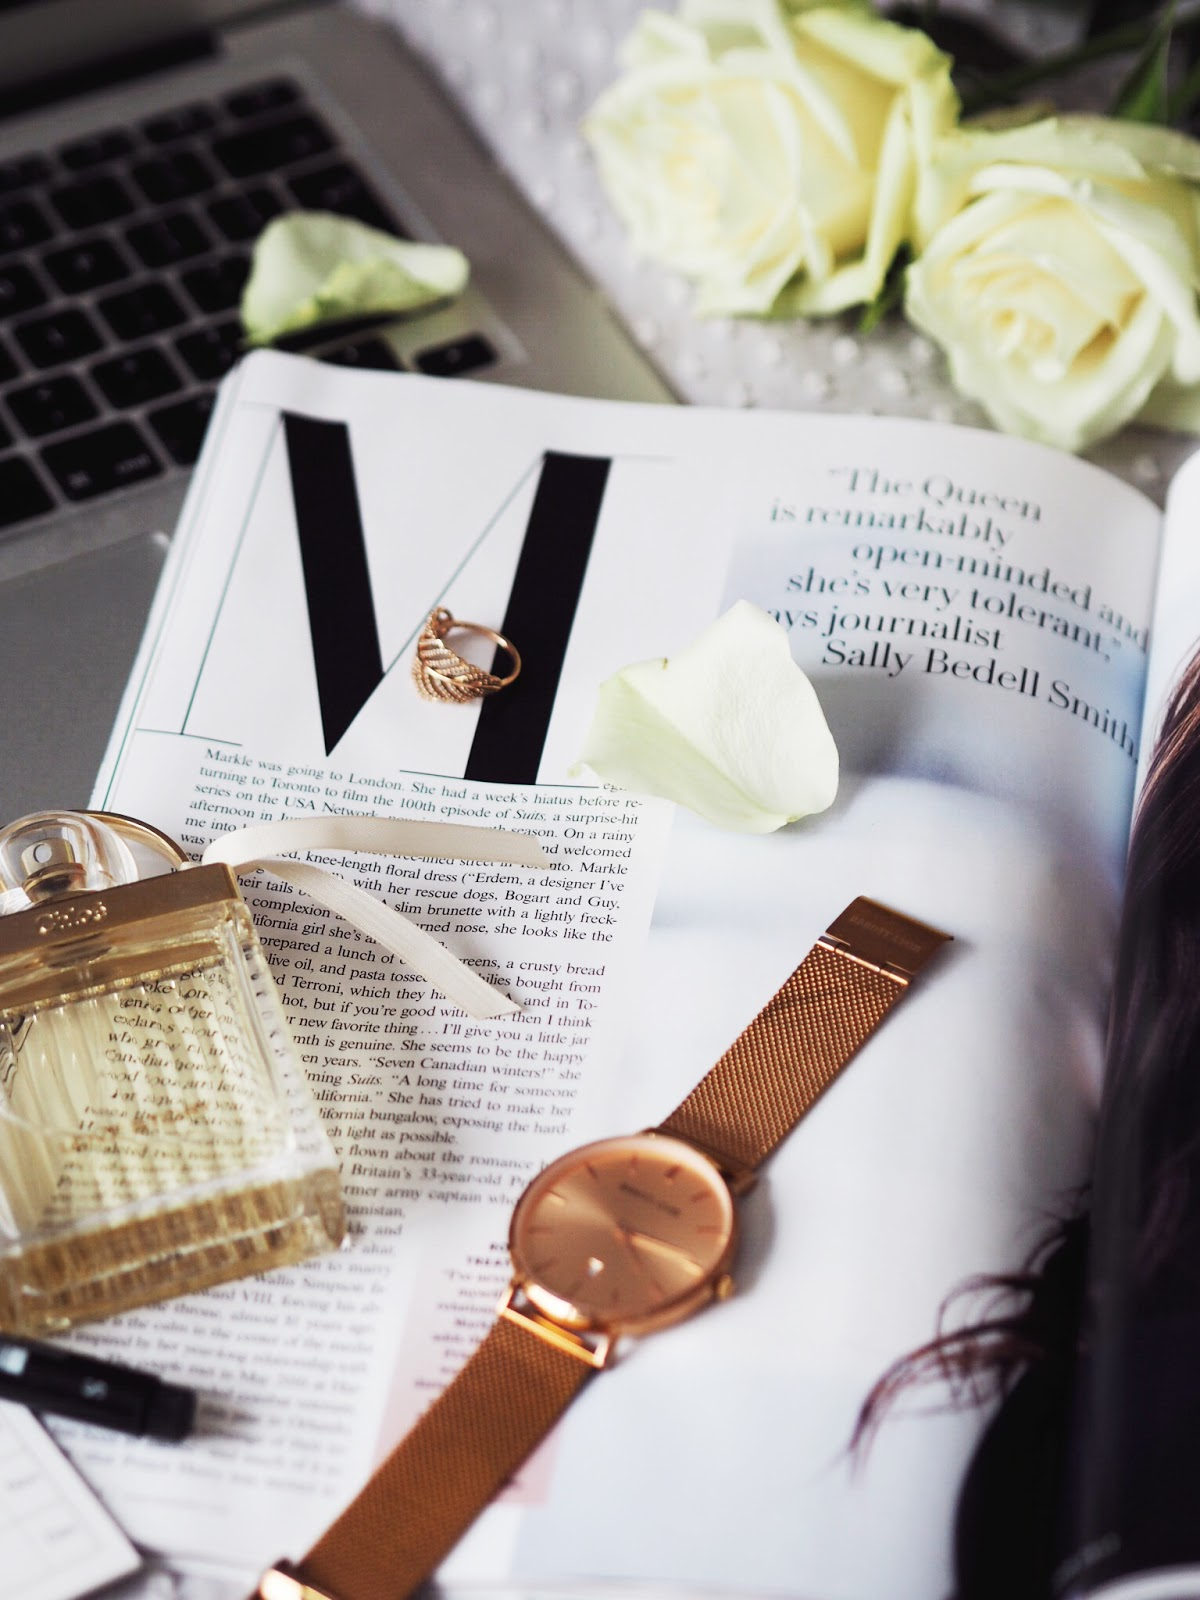 Blog Help | The Realities of Blogging Alongside a Full Time Job Rose Gold Watch Perfume MacBook